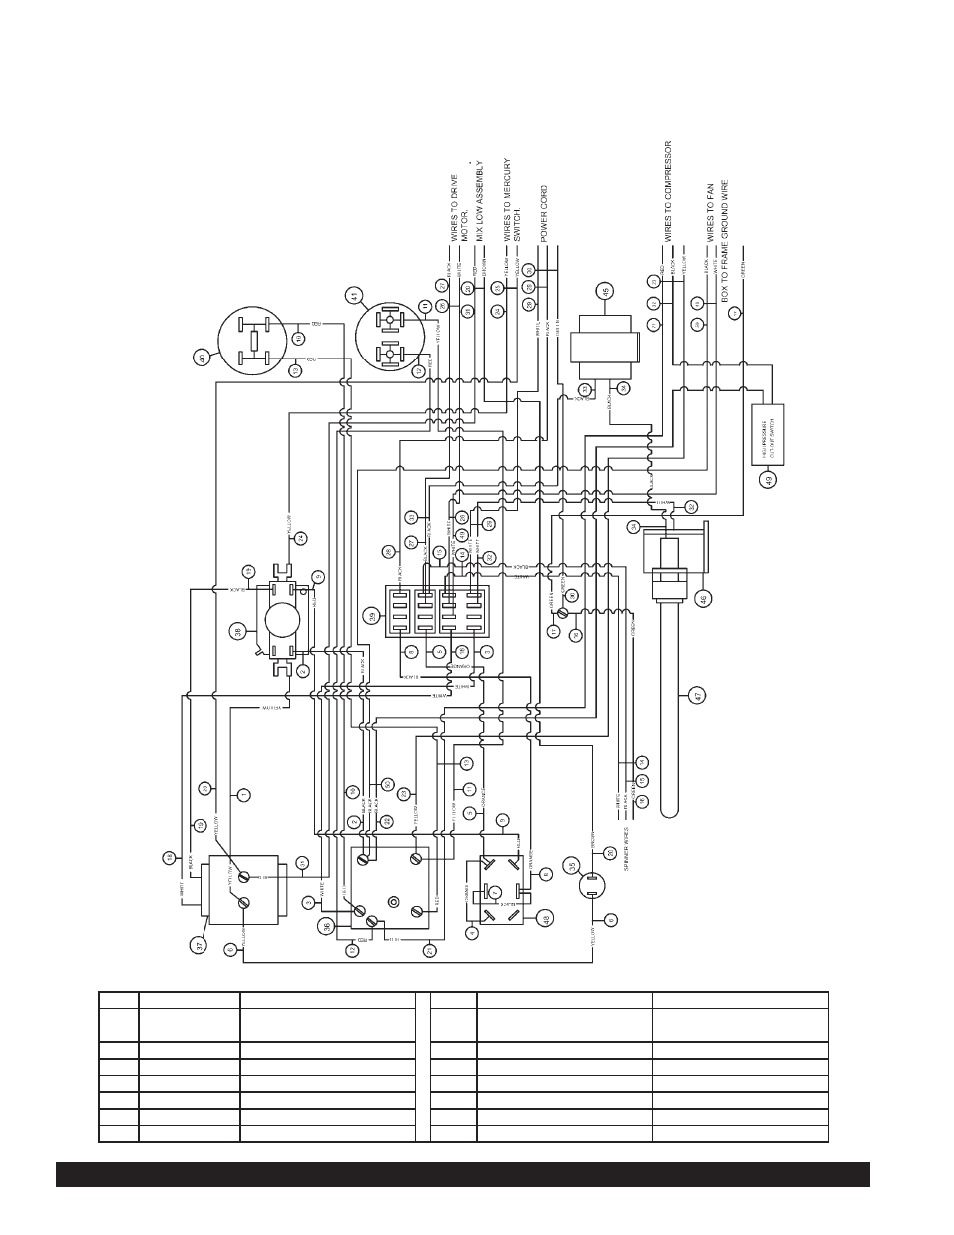 Model 3311 Wiring Diagram Water Cooled Beverage Air Subwoofer For Power Cord Grindmaster User Manual Page 28 40